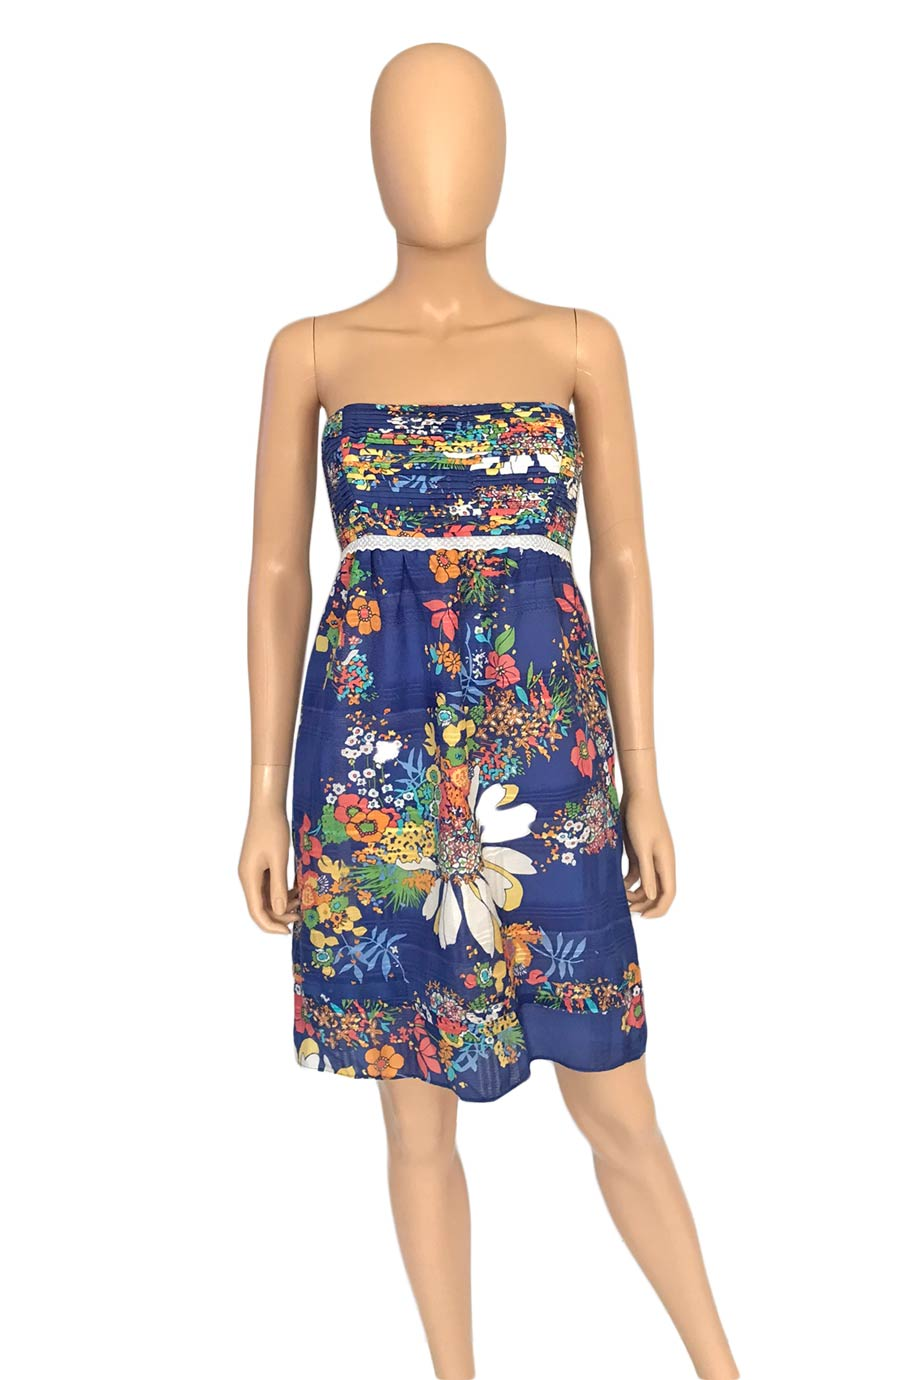 Shoshanna Blue Multi Floral Print Cotton Strapless Dress / Sz 6-Style Therapy